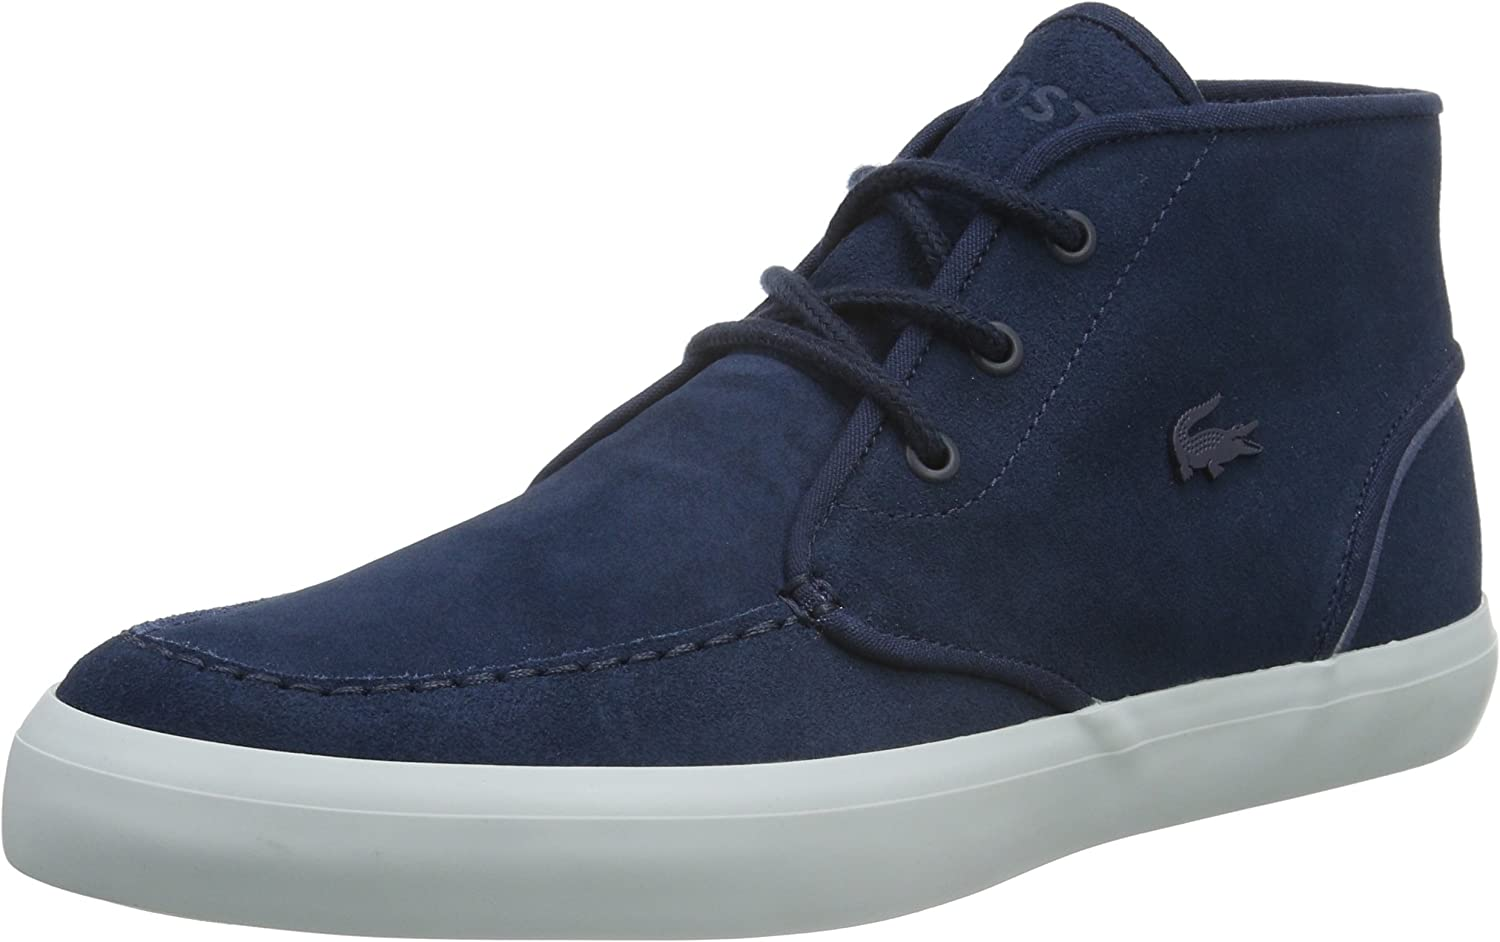 Lacoste Sevrin Mid 316 1, Men's Low-Top Sneakers